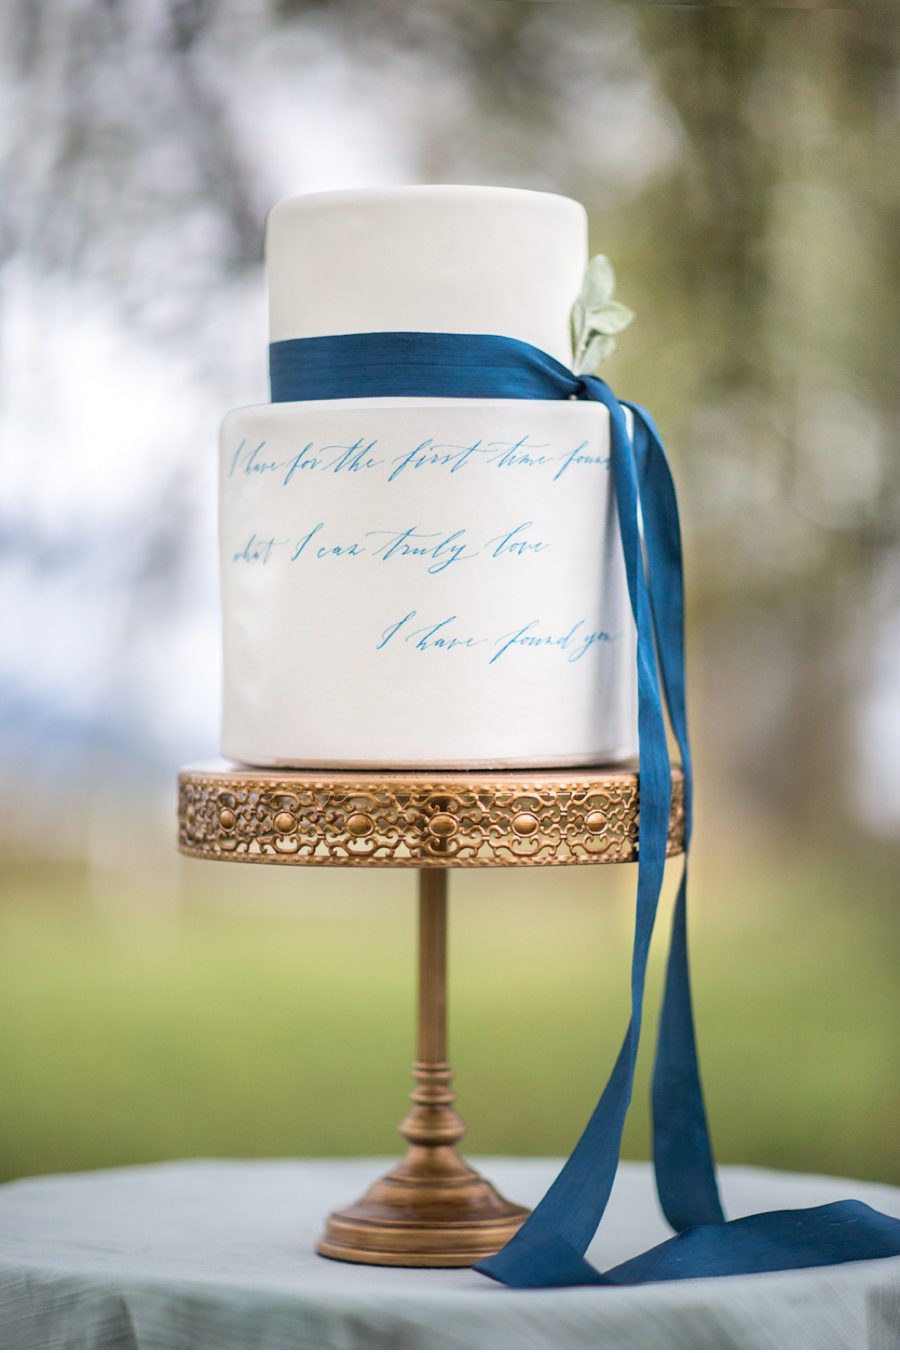 Fine-Art-Wedding-Cake-with-Script